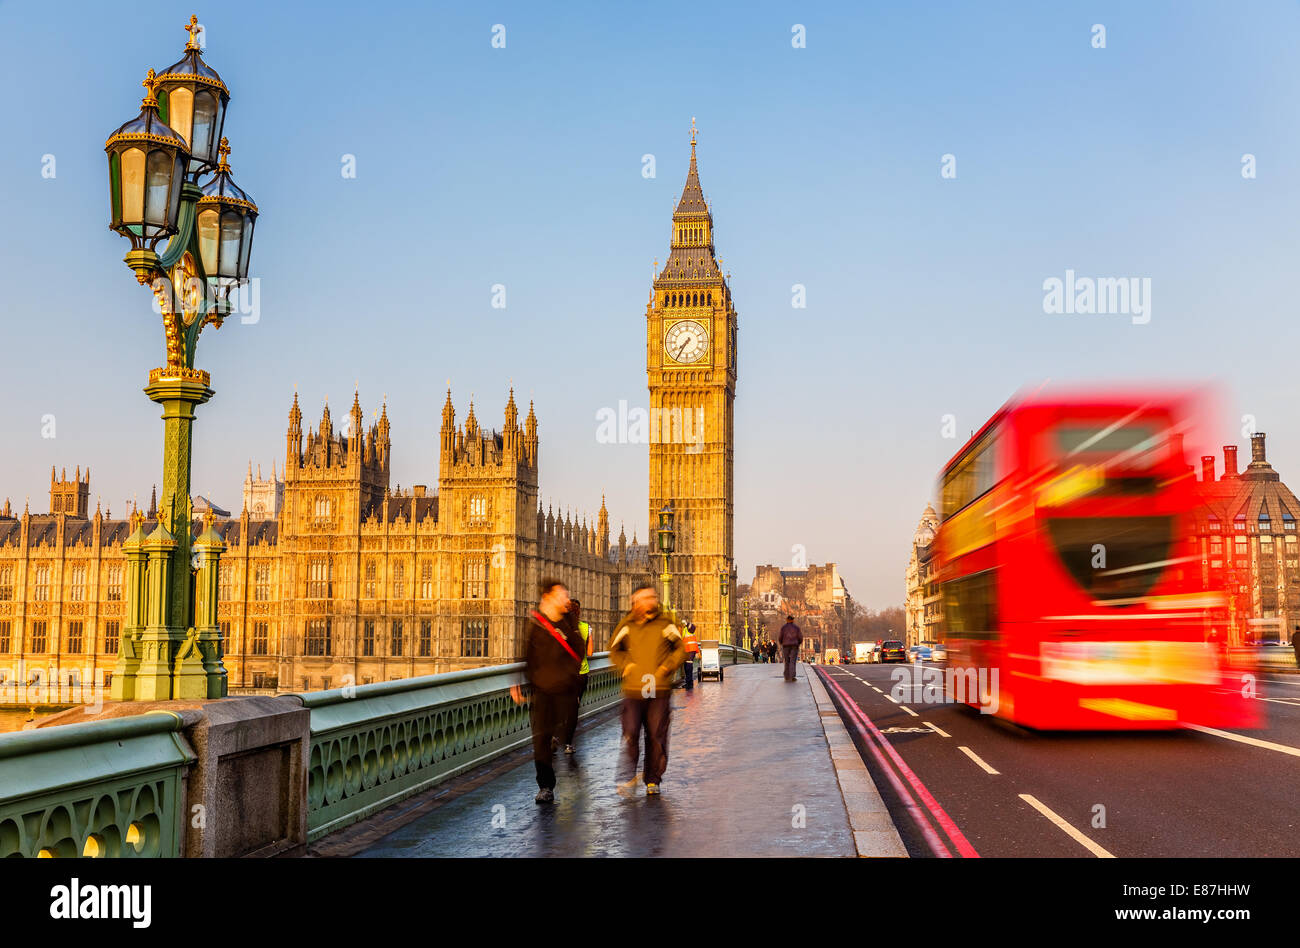 Big Ben and red double-decker bus, London - Stock Image